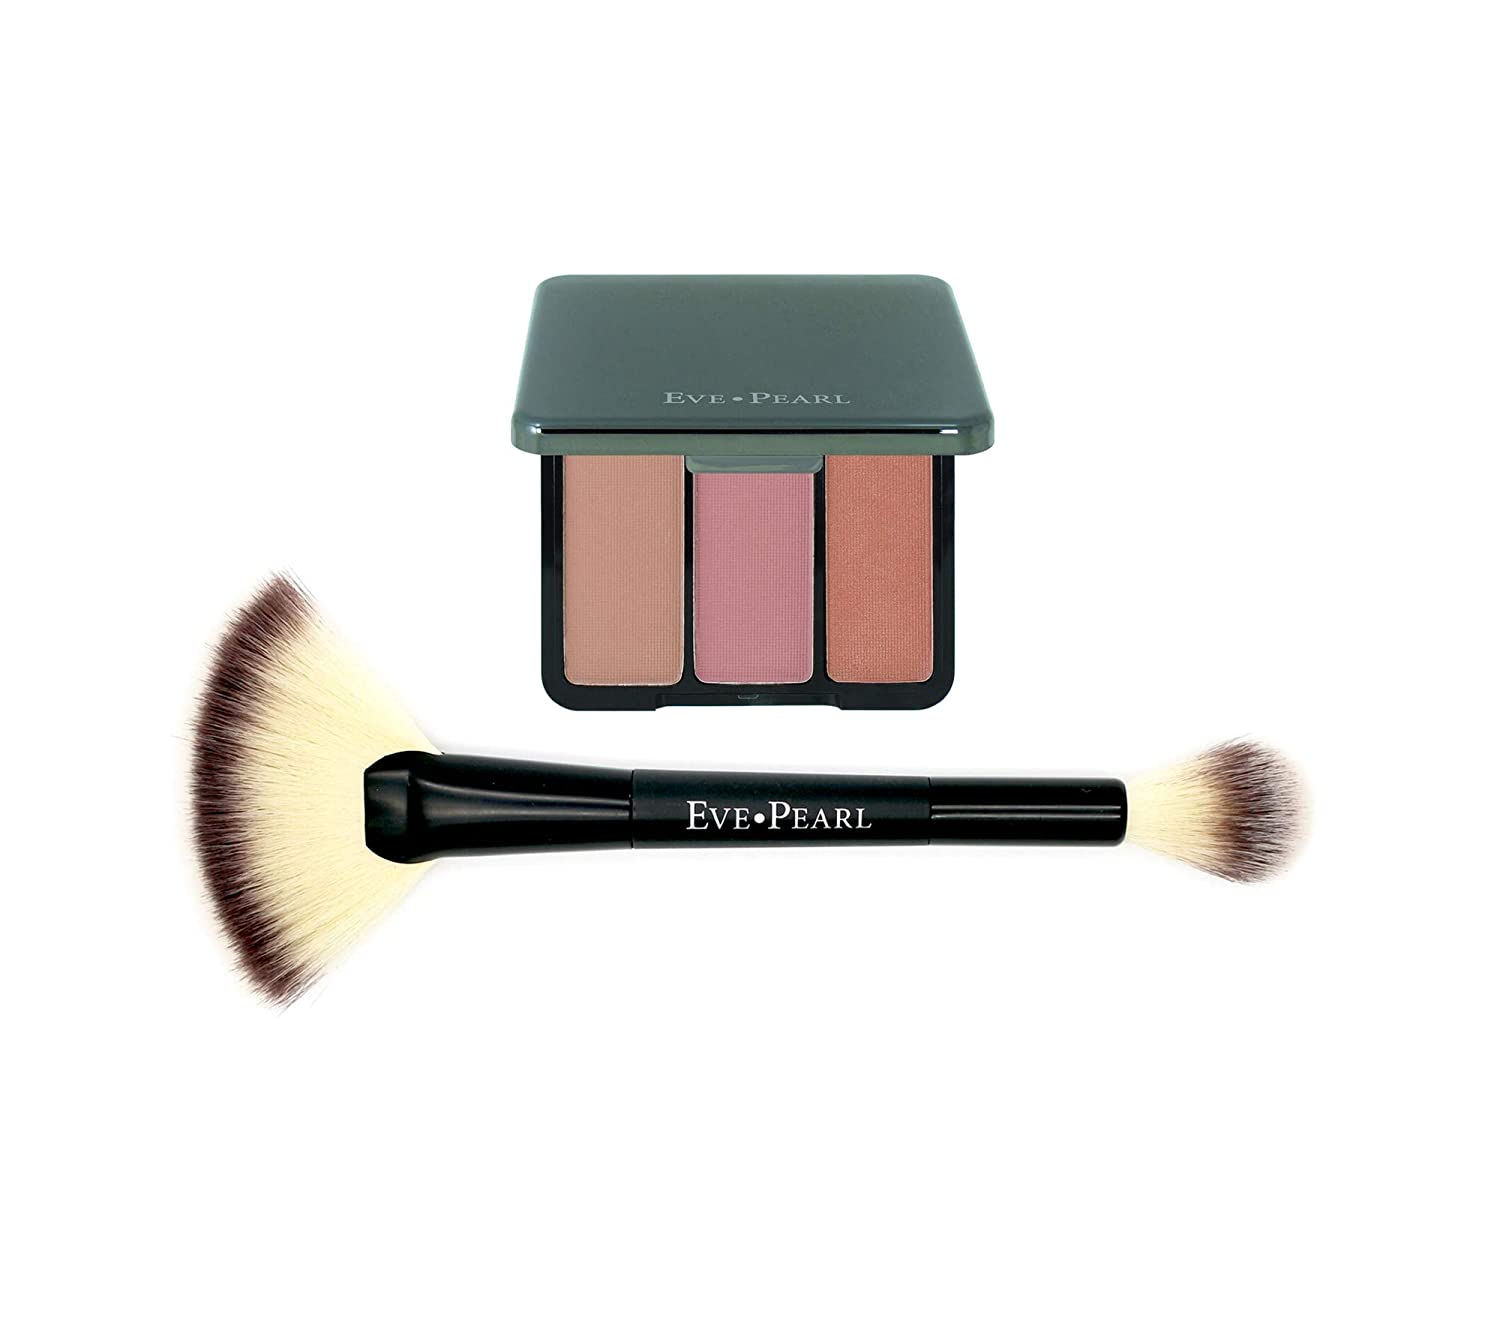 70% OFF Outlet EVE PEARL Blush Trio Palette Super sale period limited Makeup Lasting Skincare Long